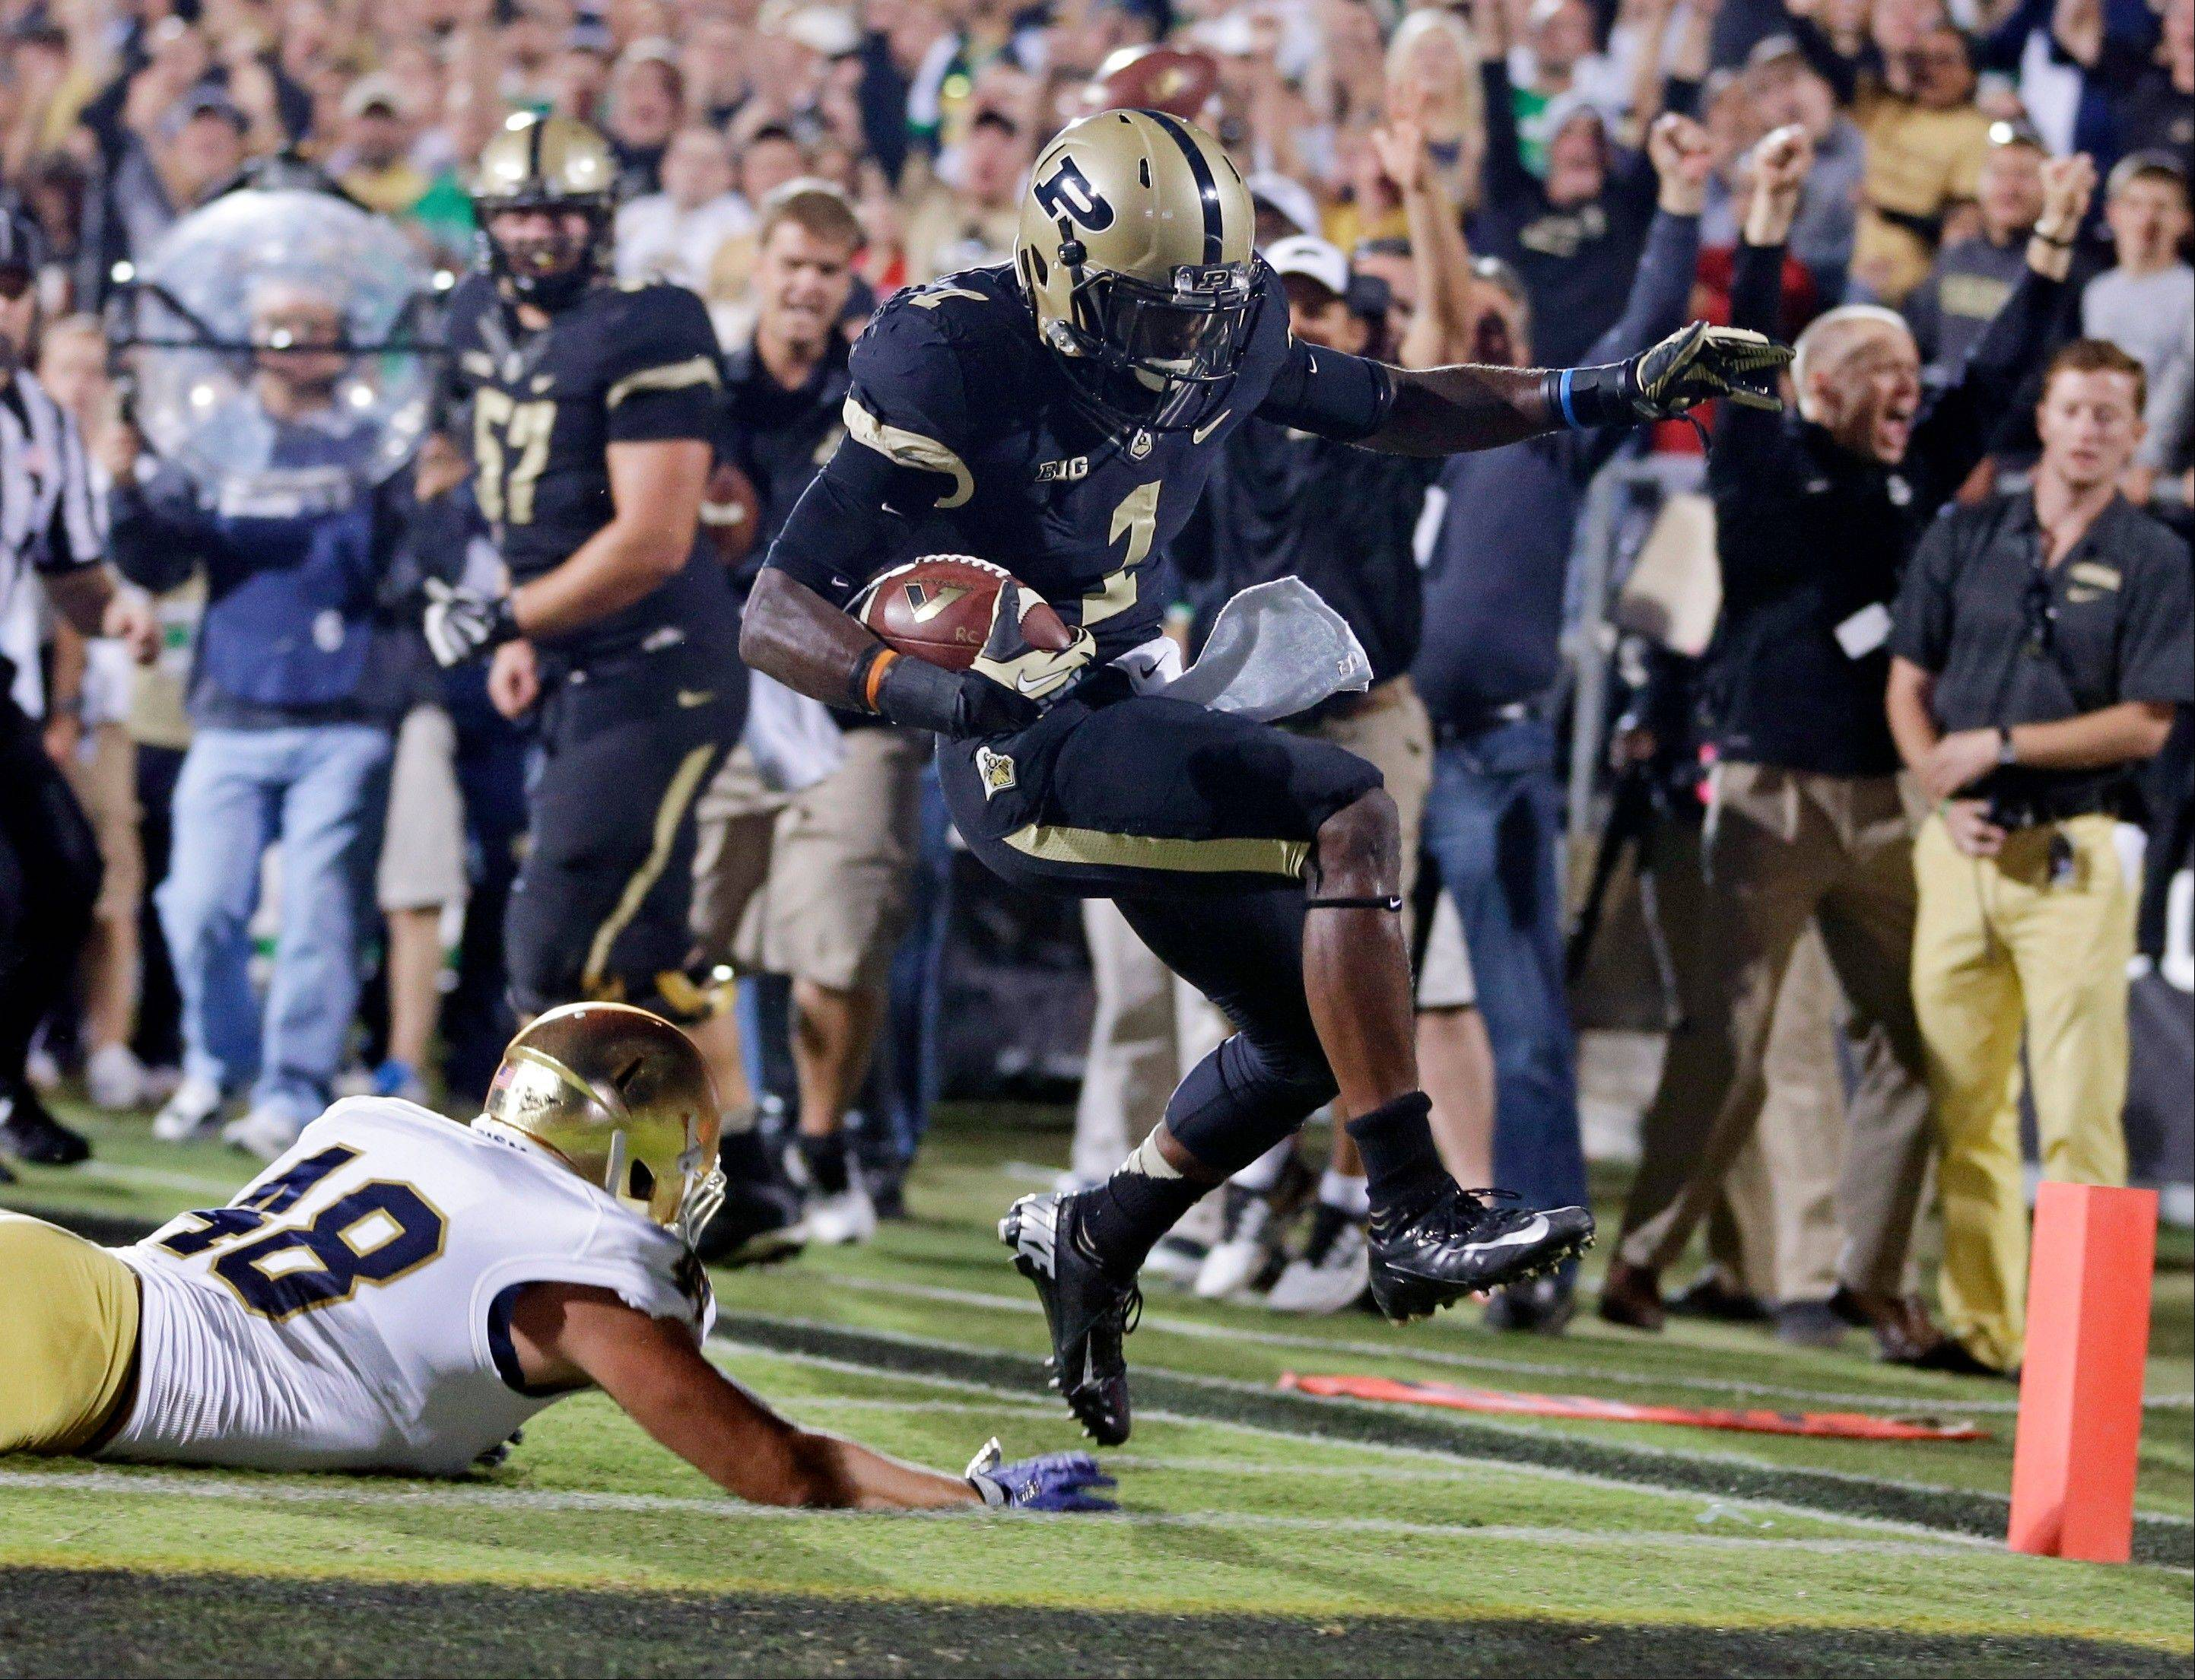 Purdue running back Akeem Hunt, right, goes over Notre Dame linebacker Dan Fox on his way to a touchdown during the first half of Saturday's game in West Lafayette, Ind. The Boilermakers nearly upset Notre Dame.